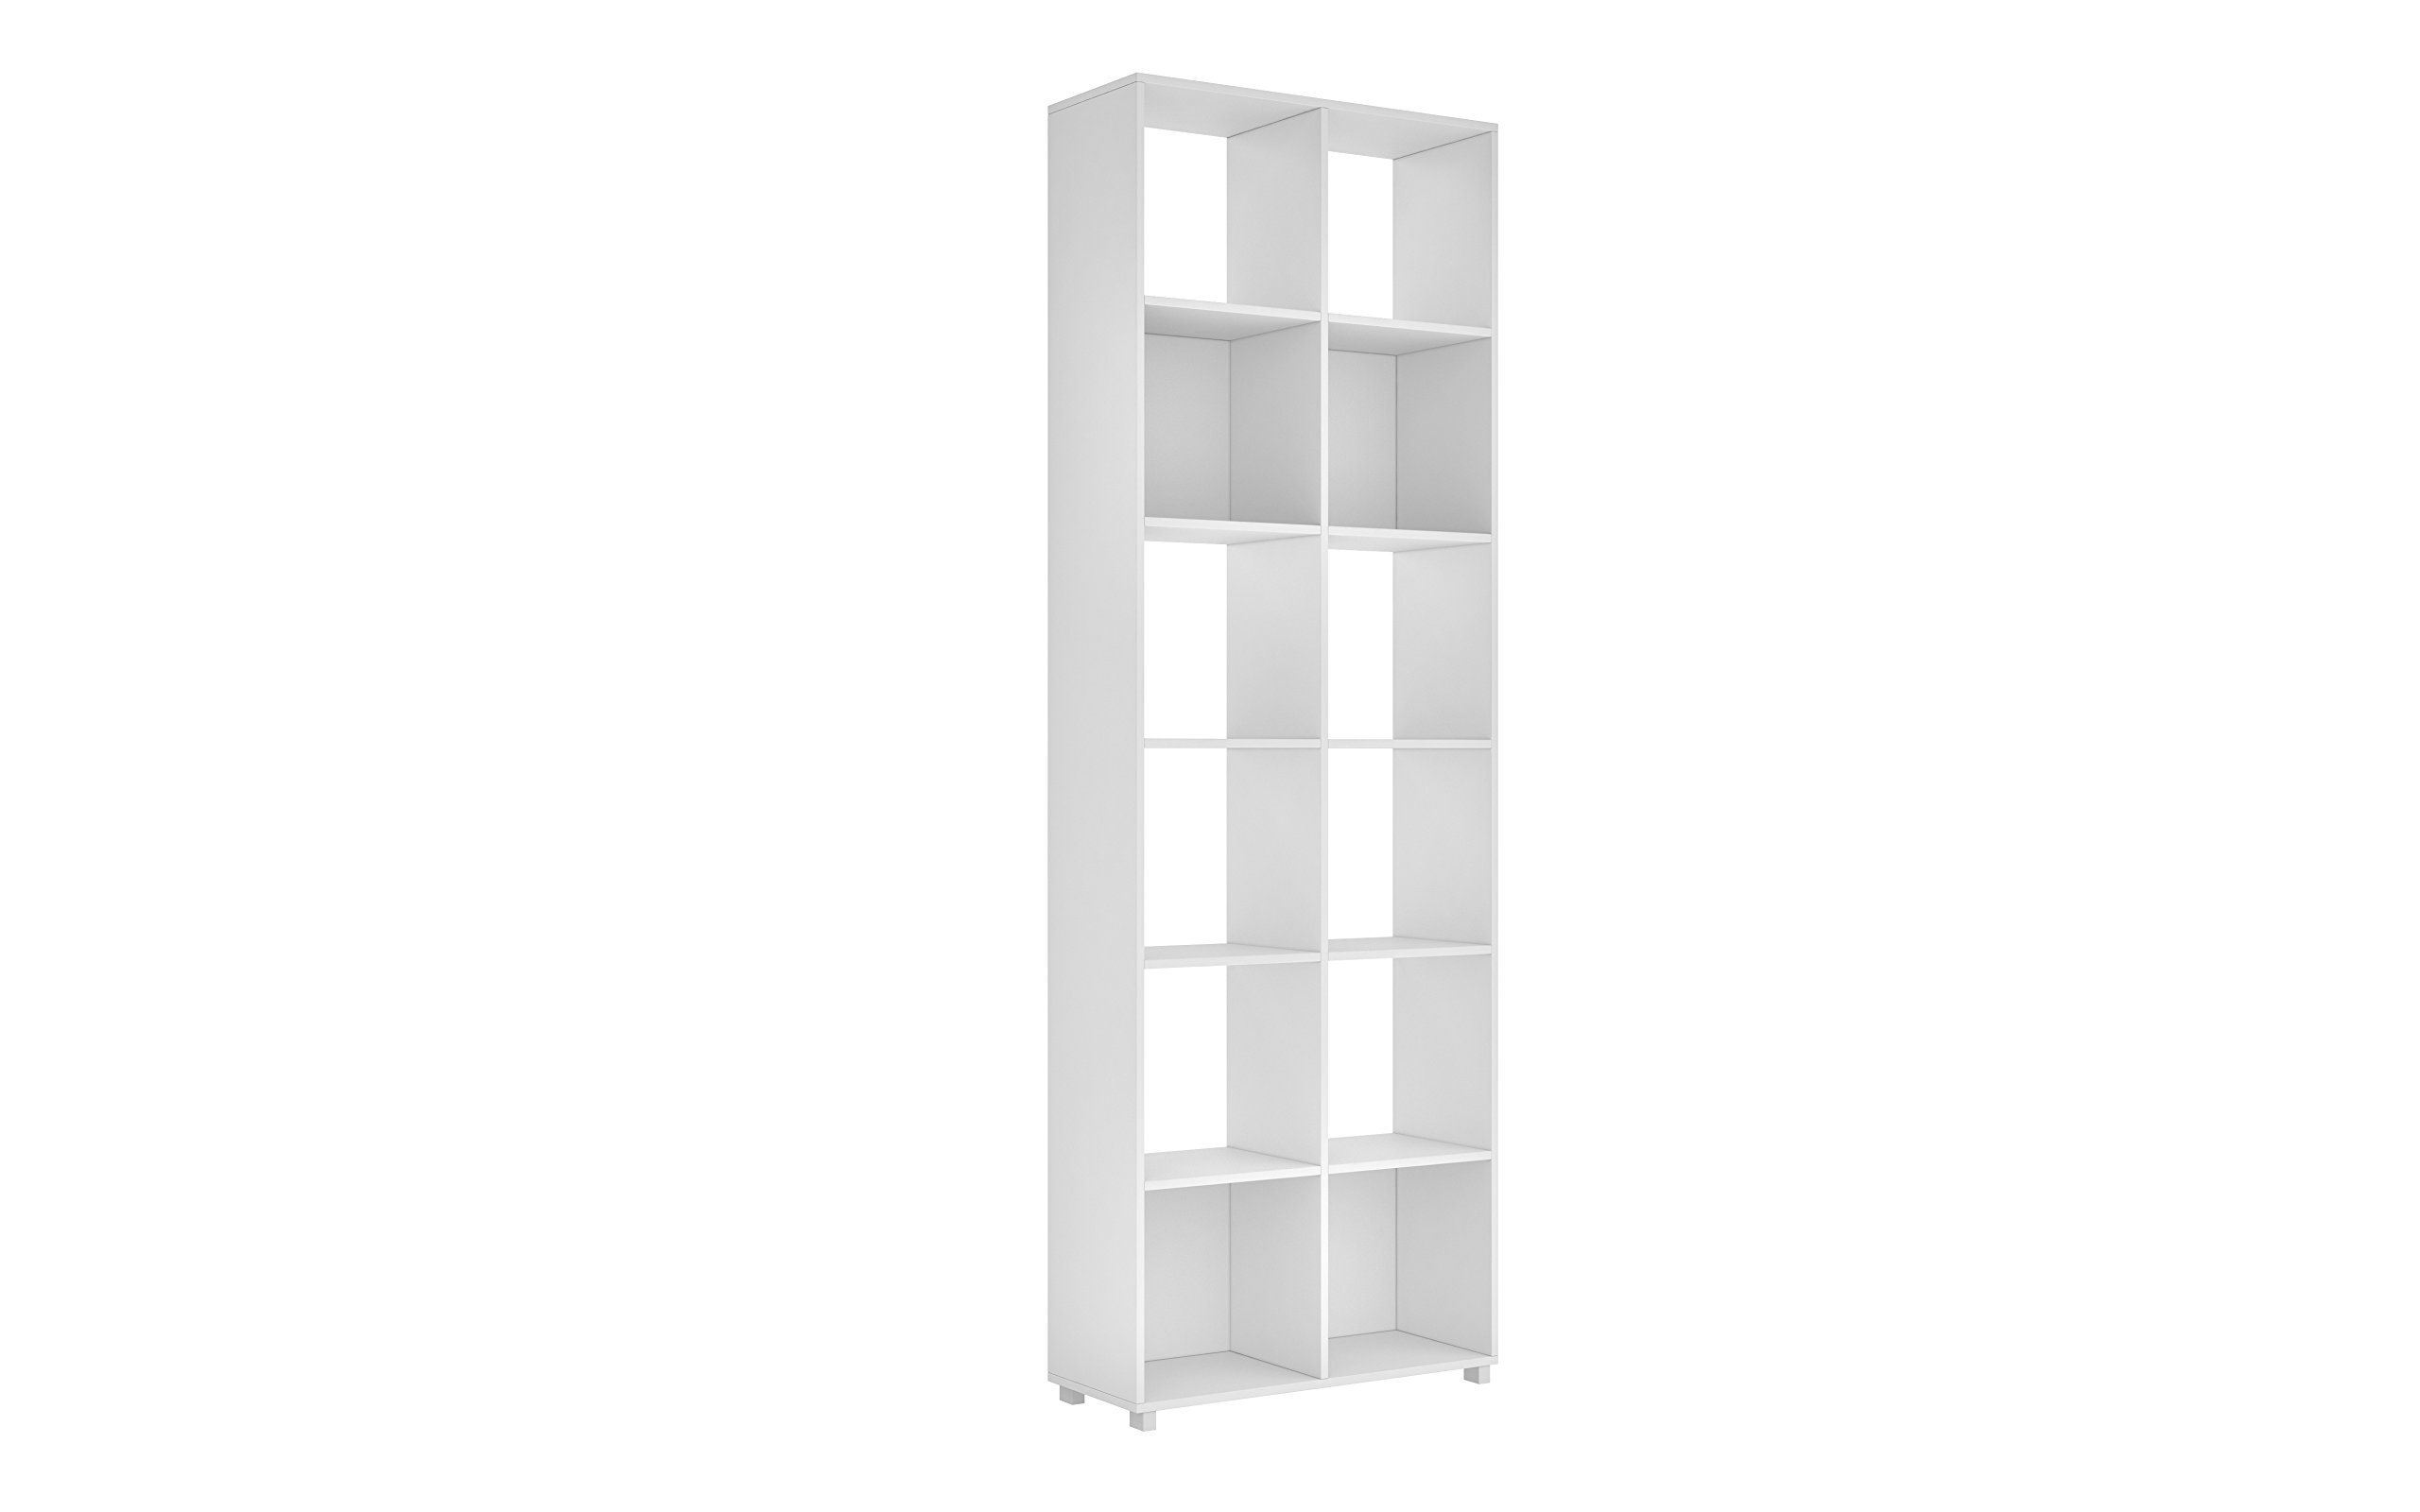 chair horizontal curtains present guide shelf book yellow white bookcases bookcase pine varnished solid accent gray wooden light silver arylide windows brown stained marble floor size dim of full wall